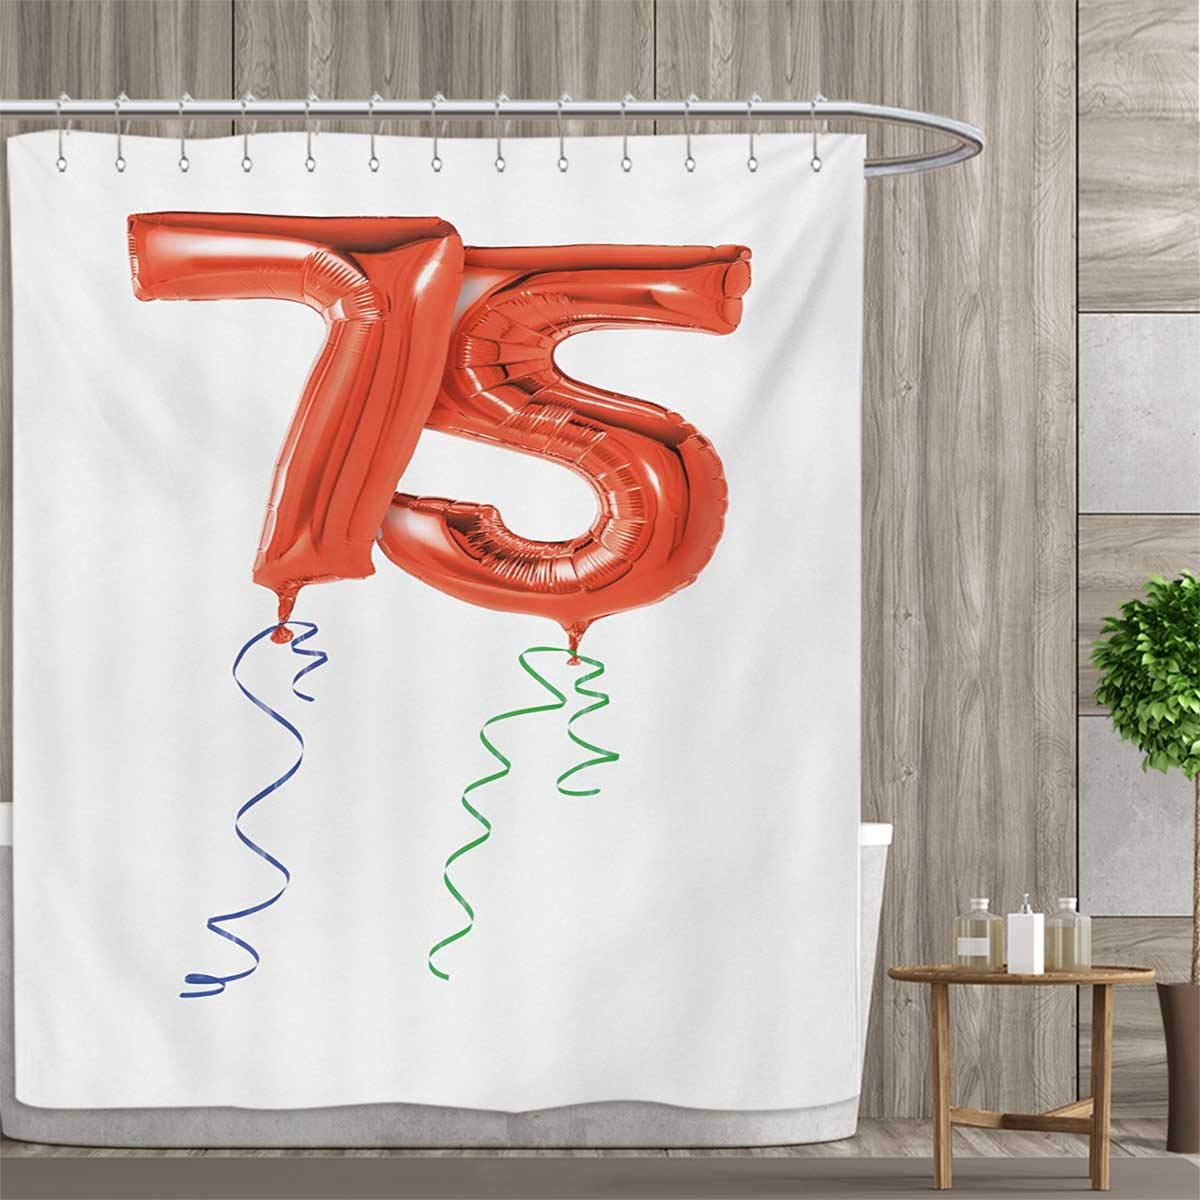 Smallfly 75th Birthday Custom Made Shower Curtain Number Balloons In Red Color With Curly Swirl Ribbons Celebration Mood Curtains 3D Digital Printing